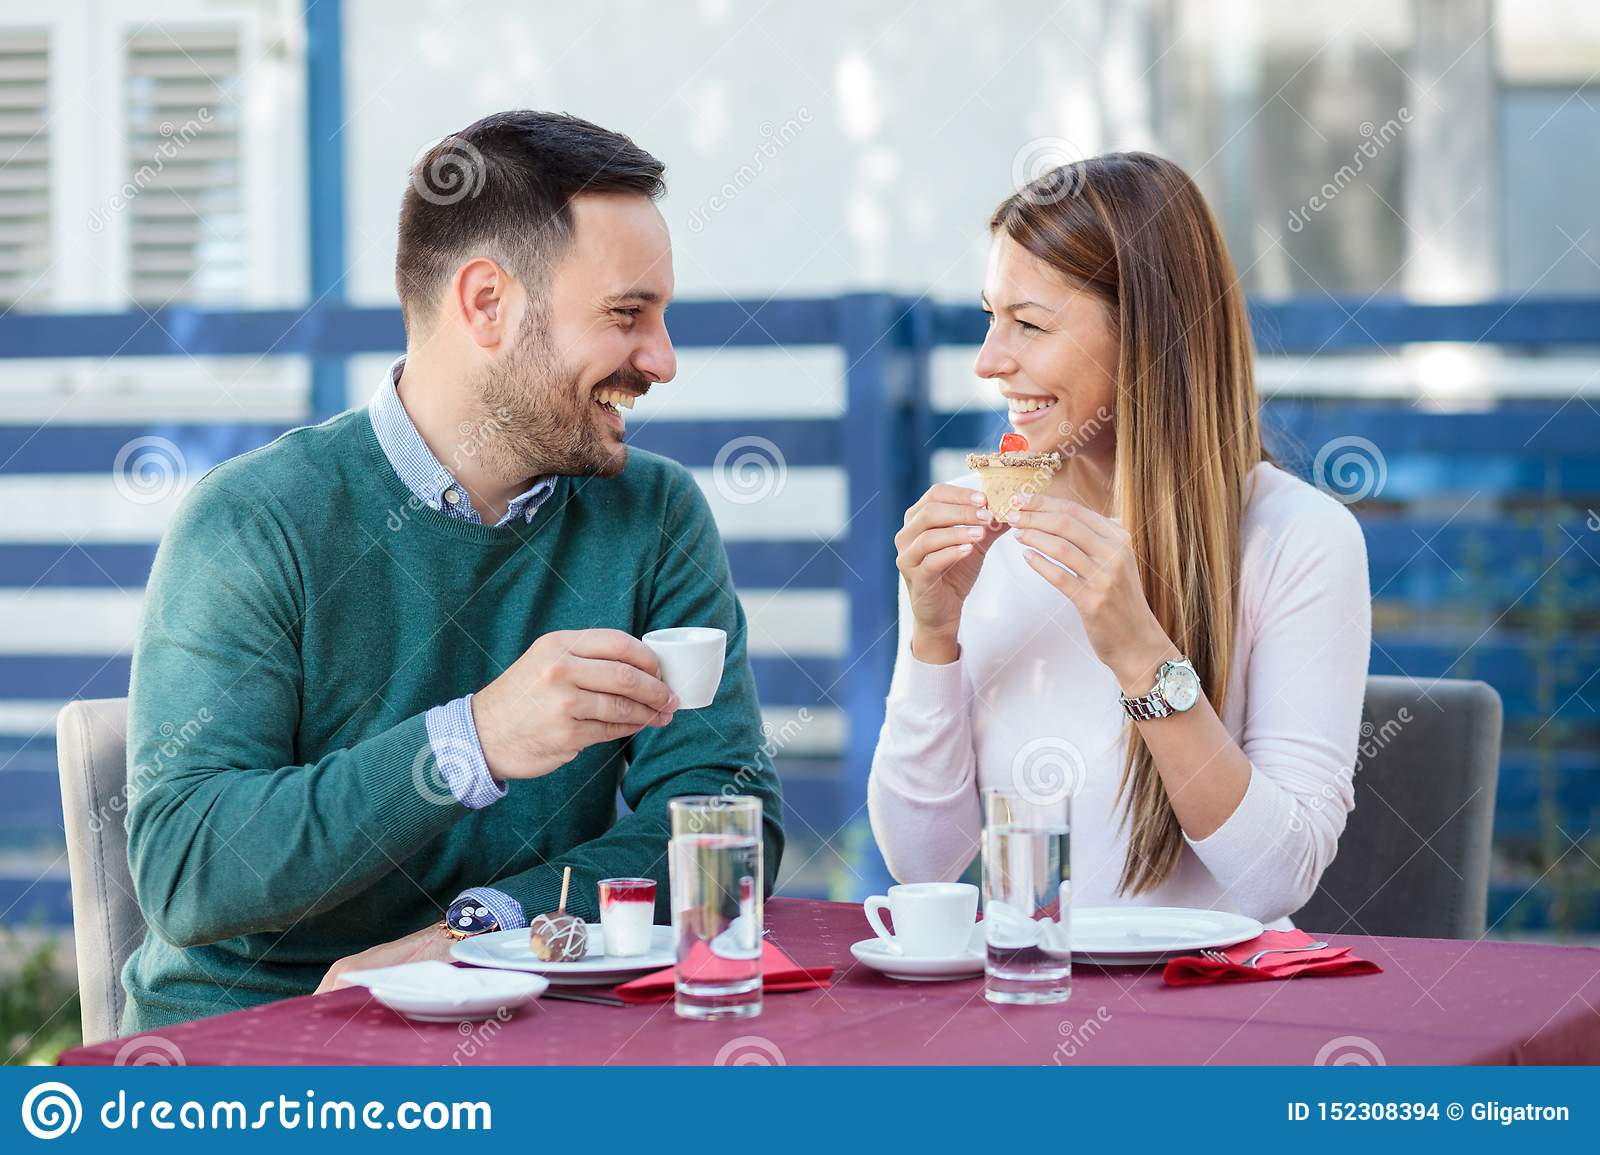 Beautiful happy young couple eating cakes and drinking coffee in a restaurant